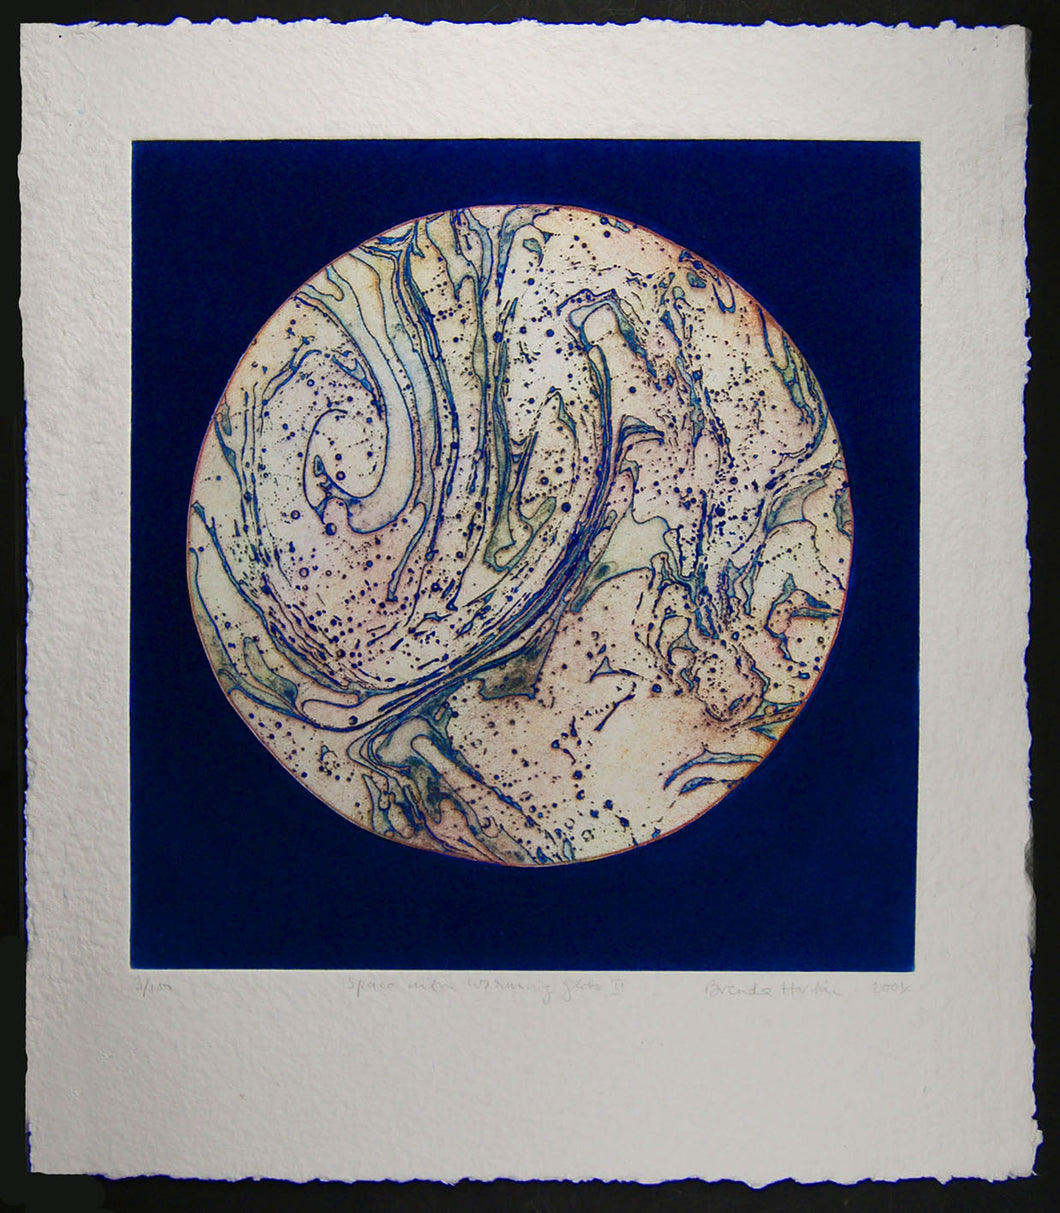 Space with Blue Warming Globe